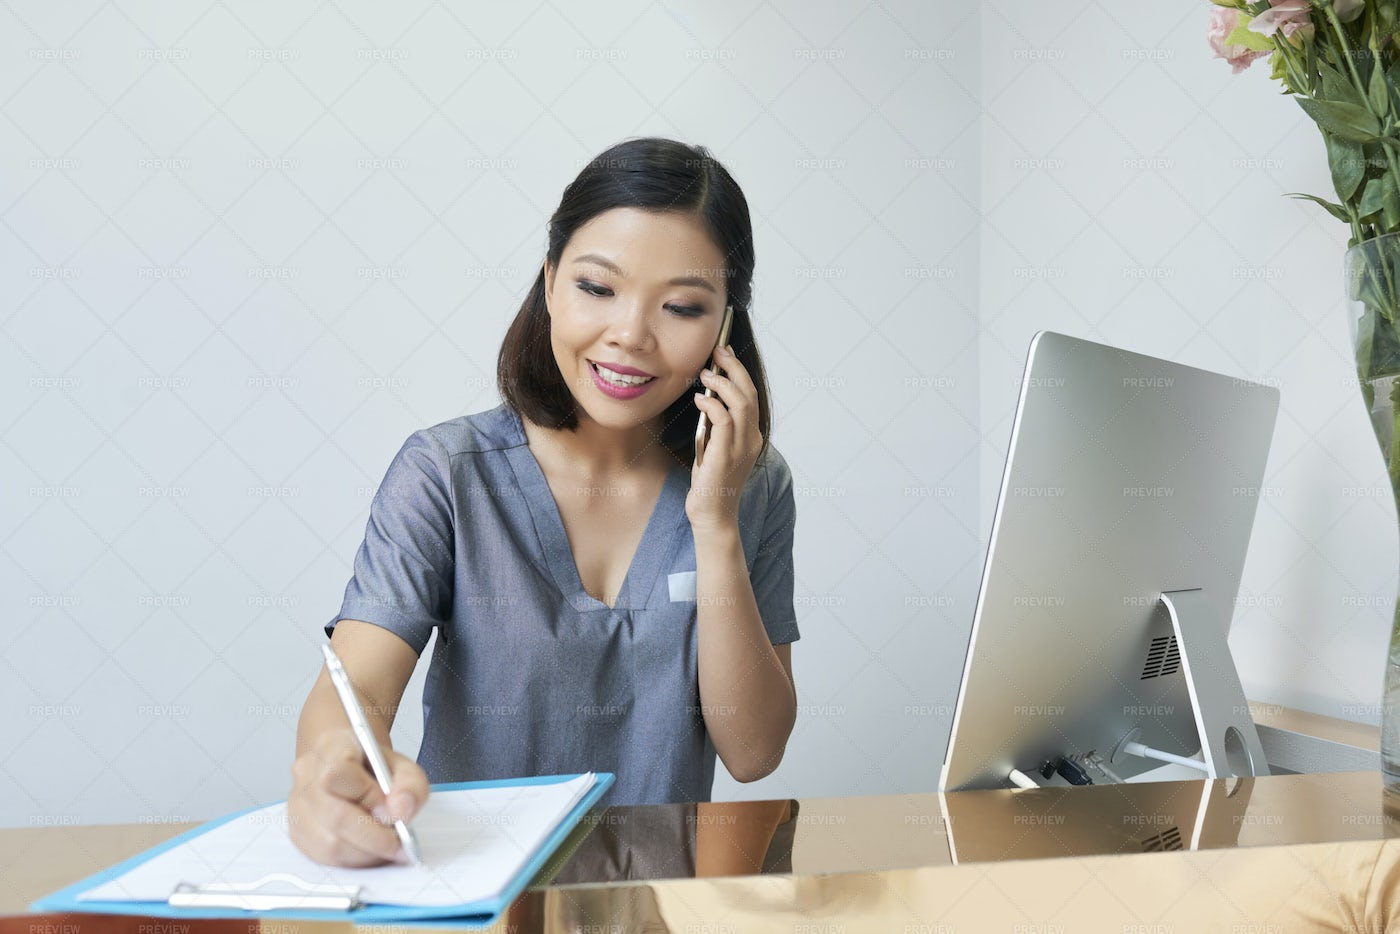 Receptionist At Work: Stock Photos